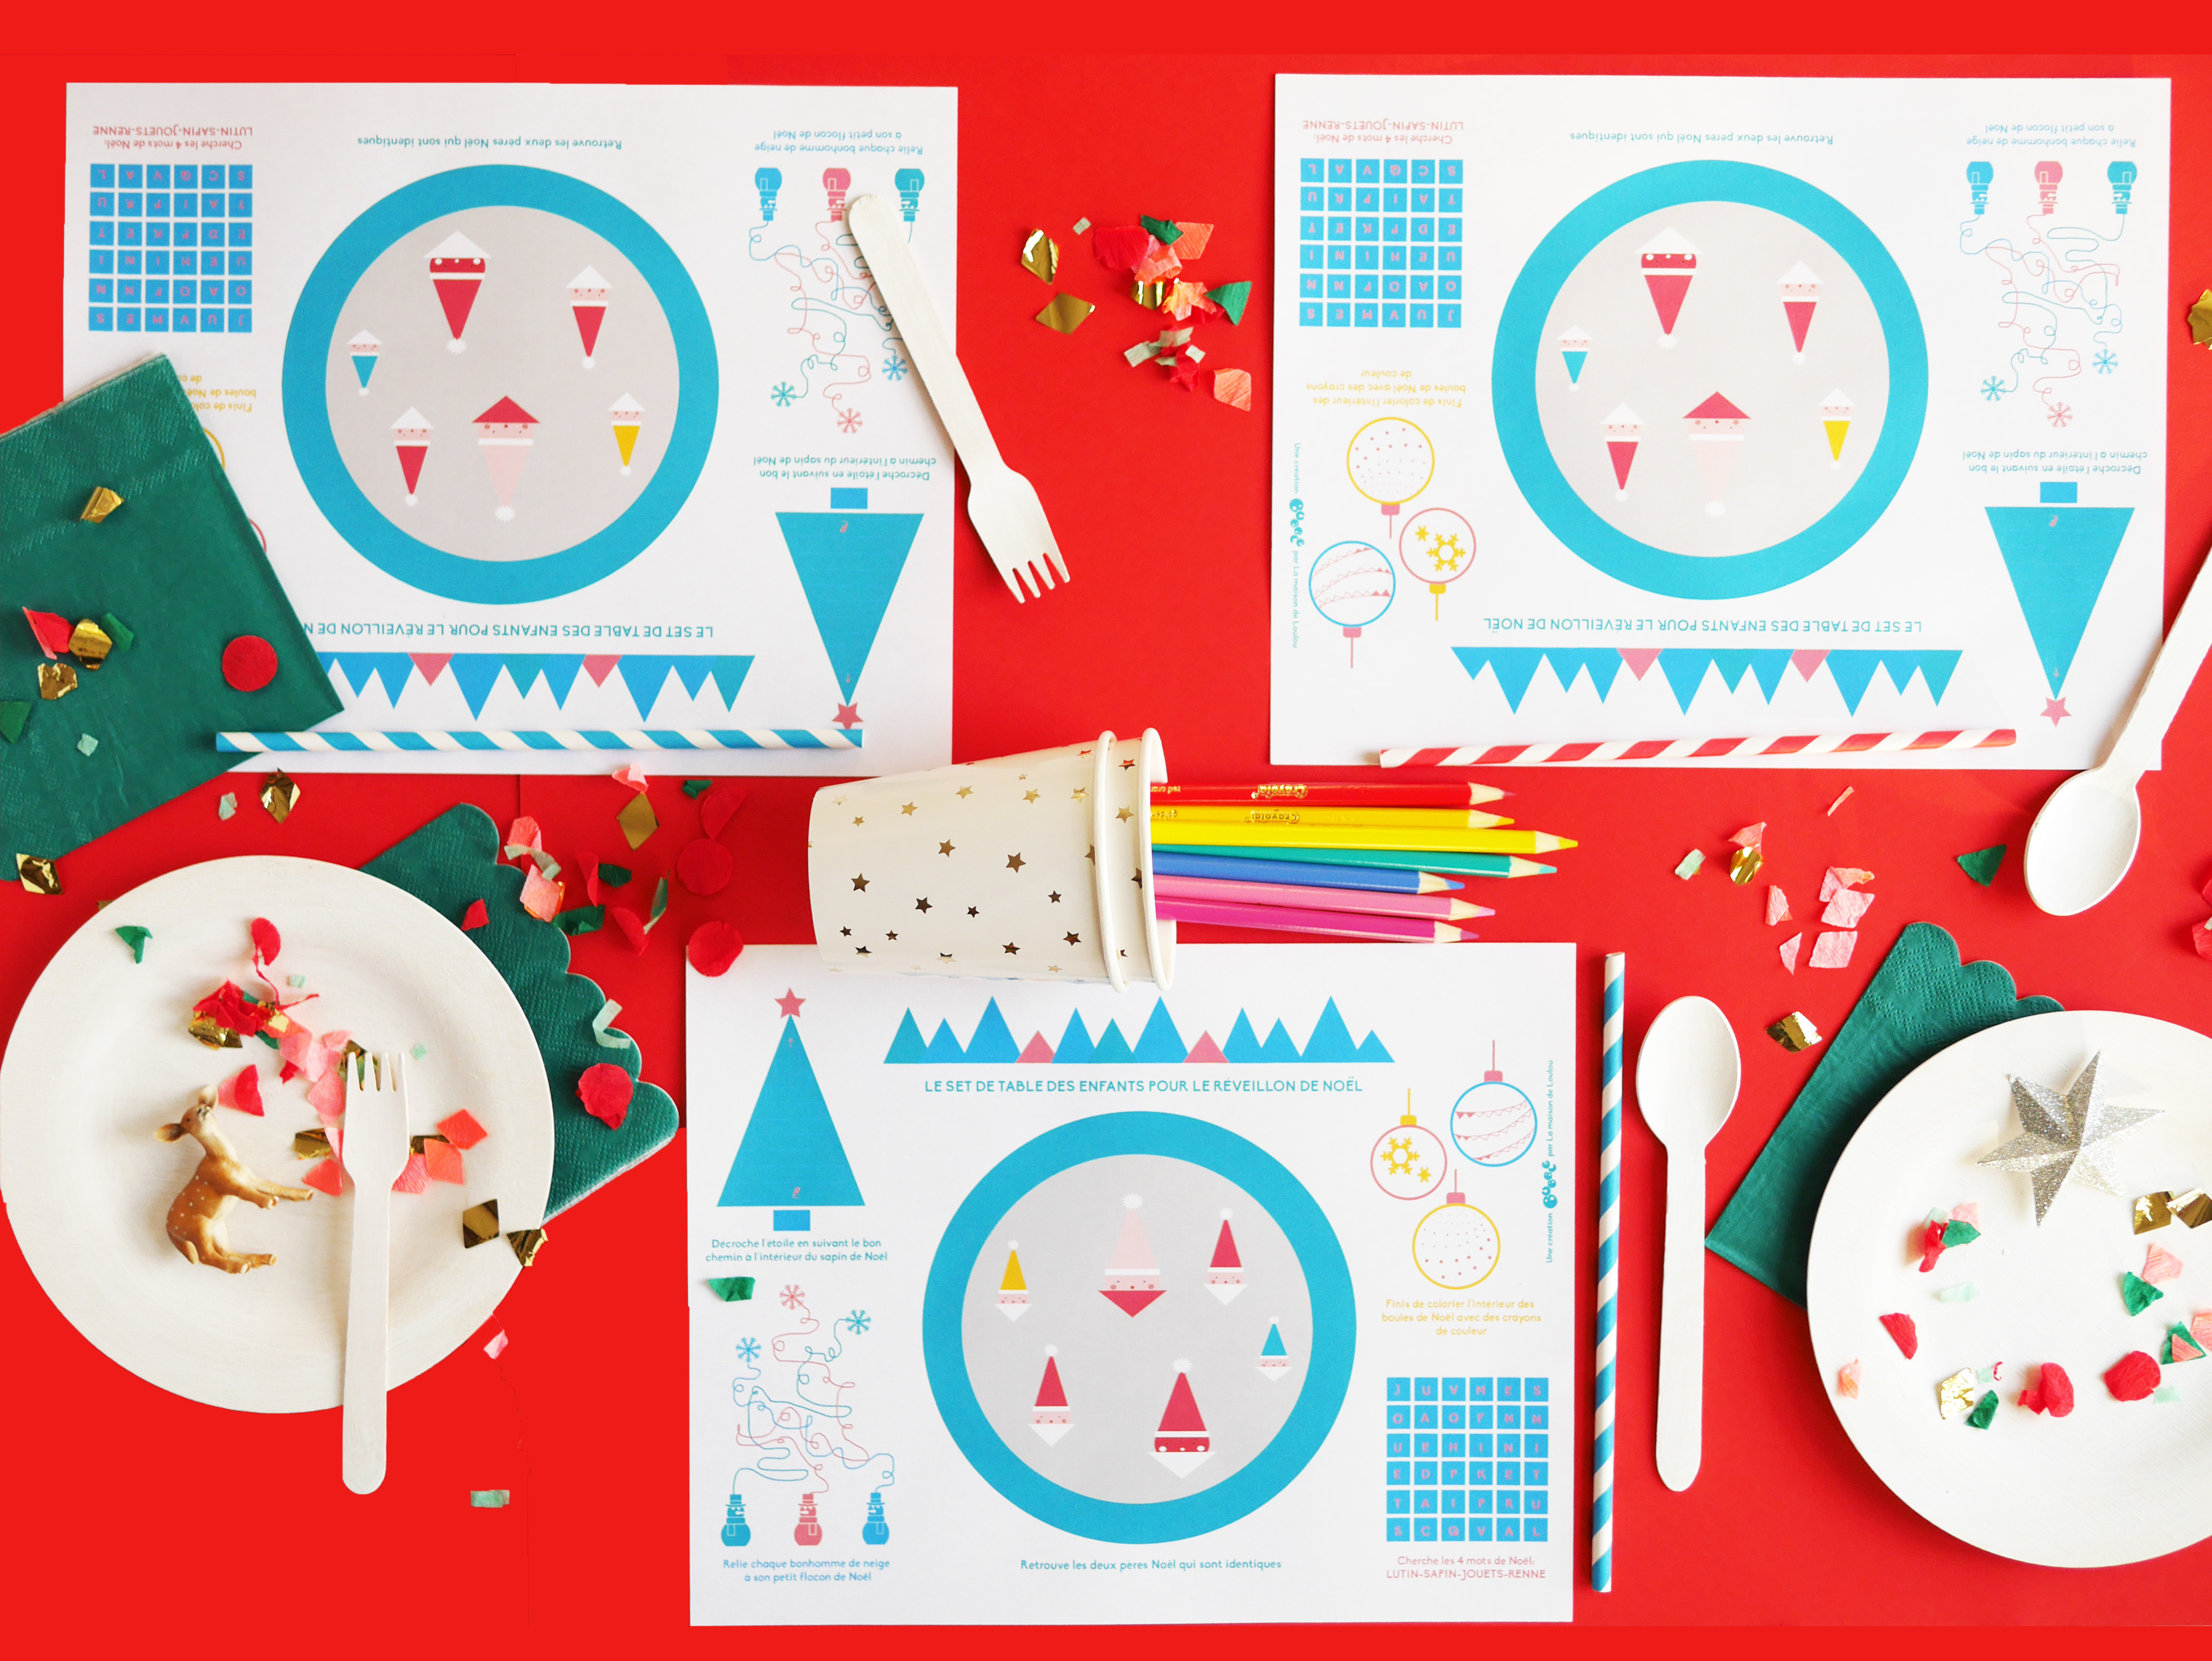 Interactive Free Printable Christmas Placematla Maison De Loulou | - Free Printable Christmas Placemats For Adults